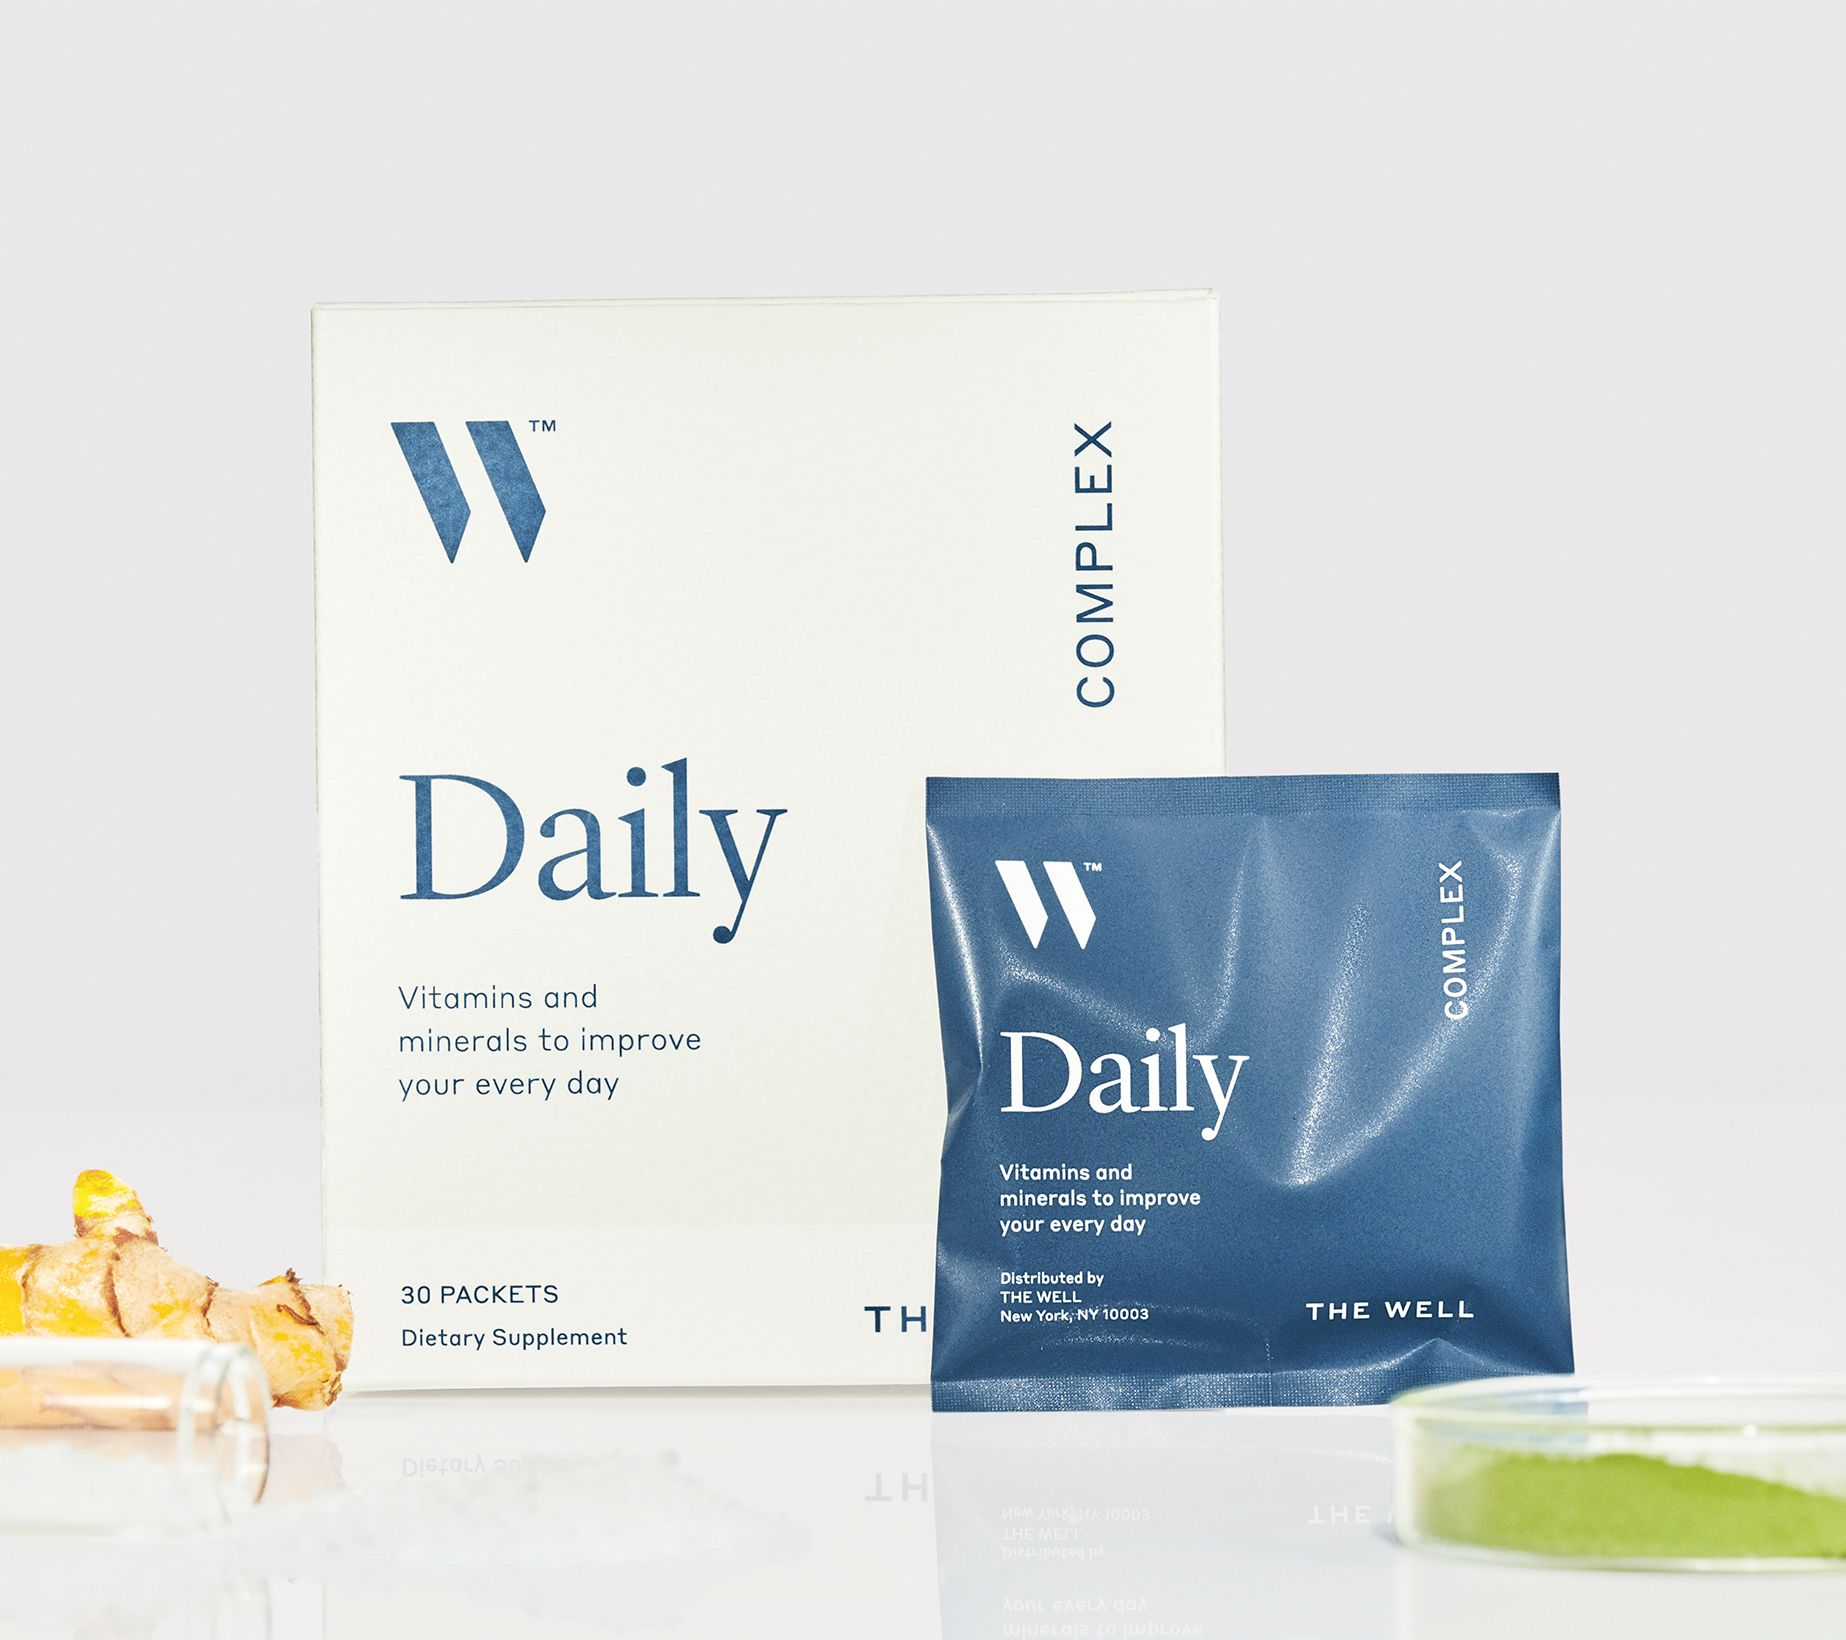 THE WELL Daily